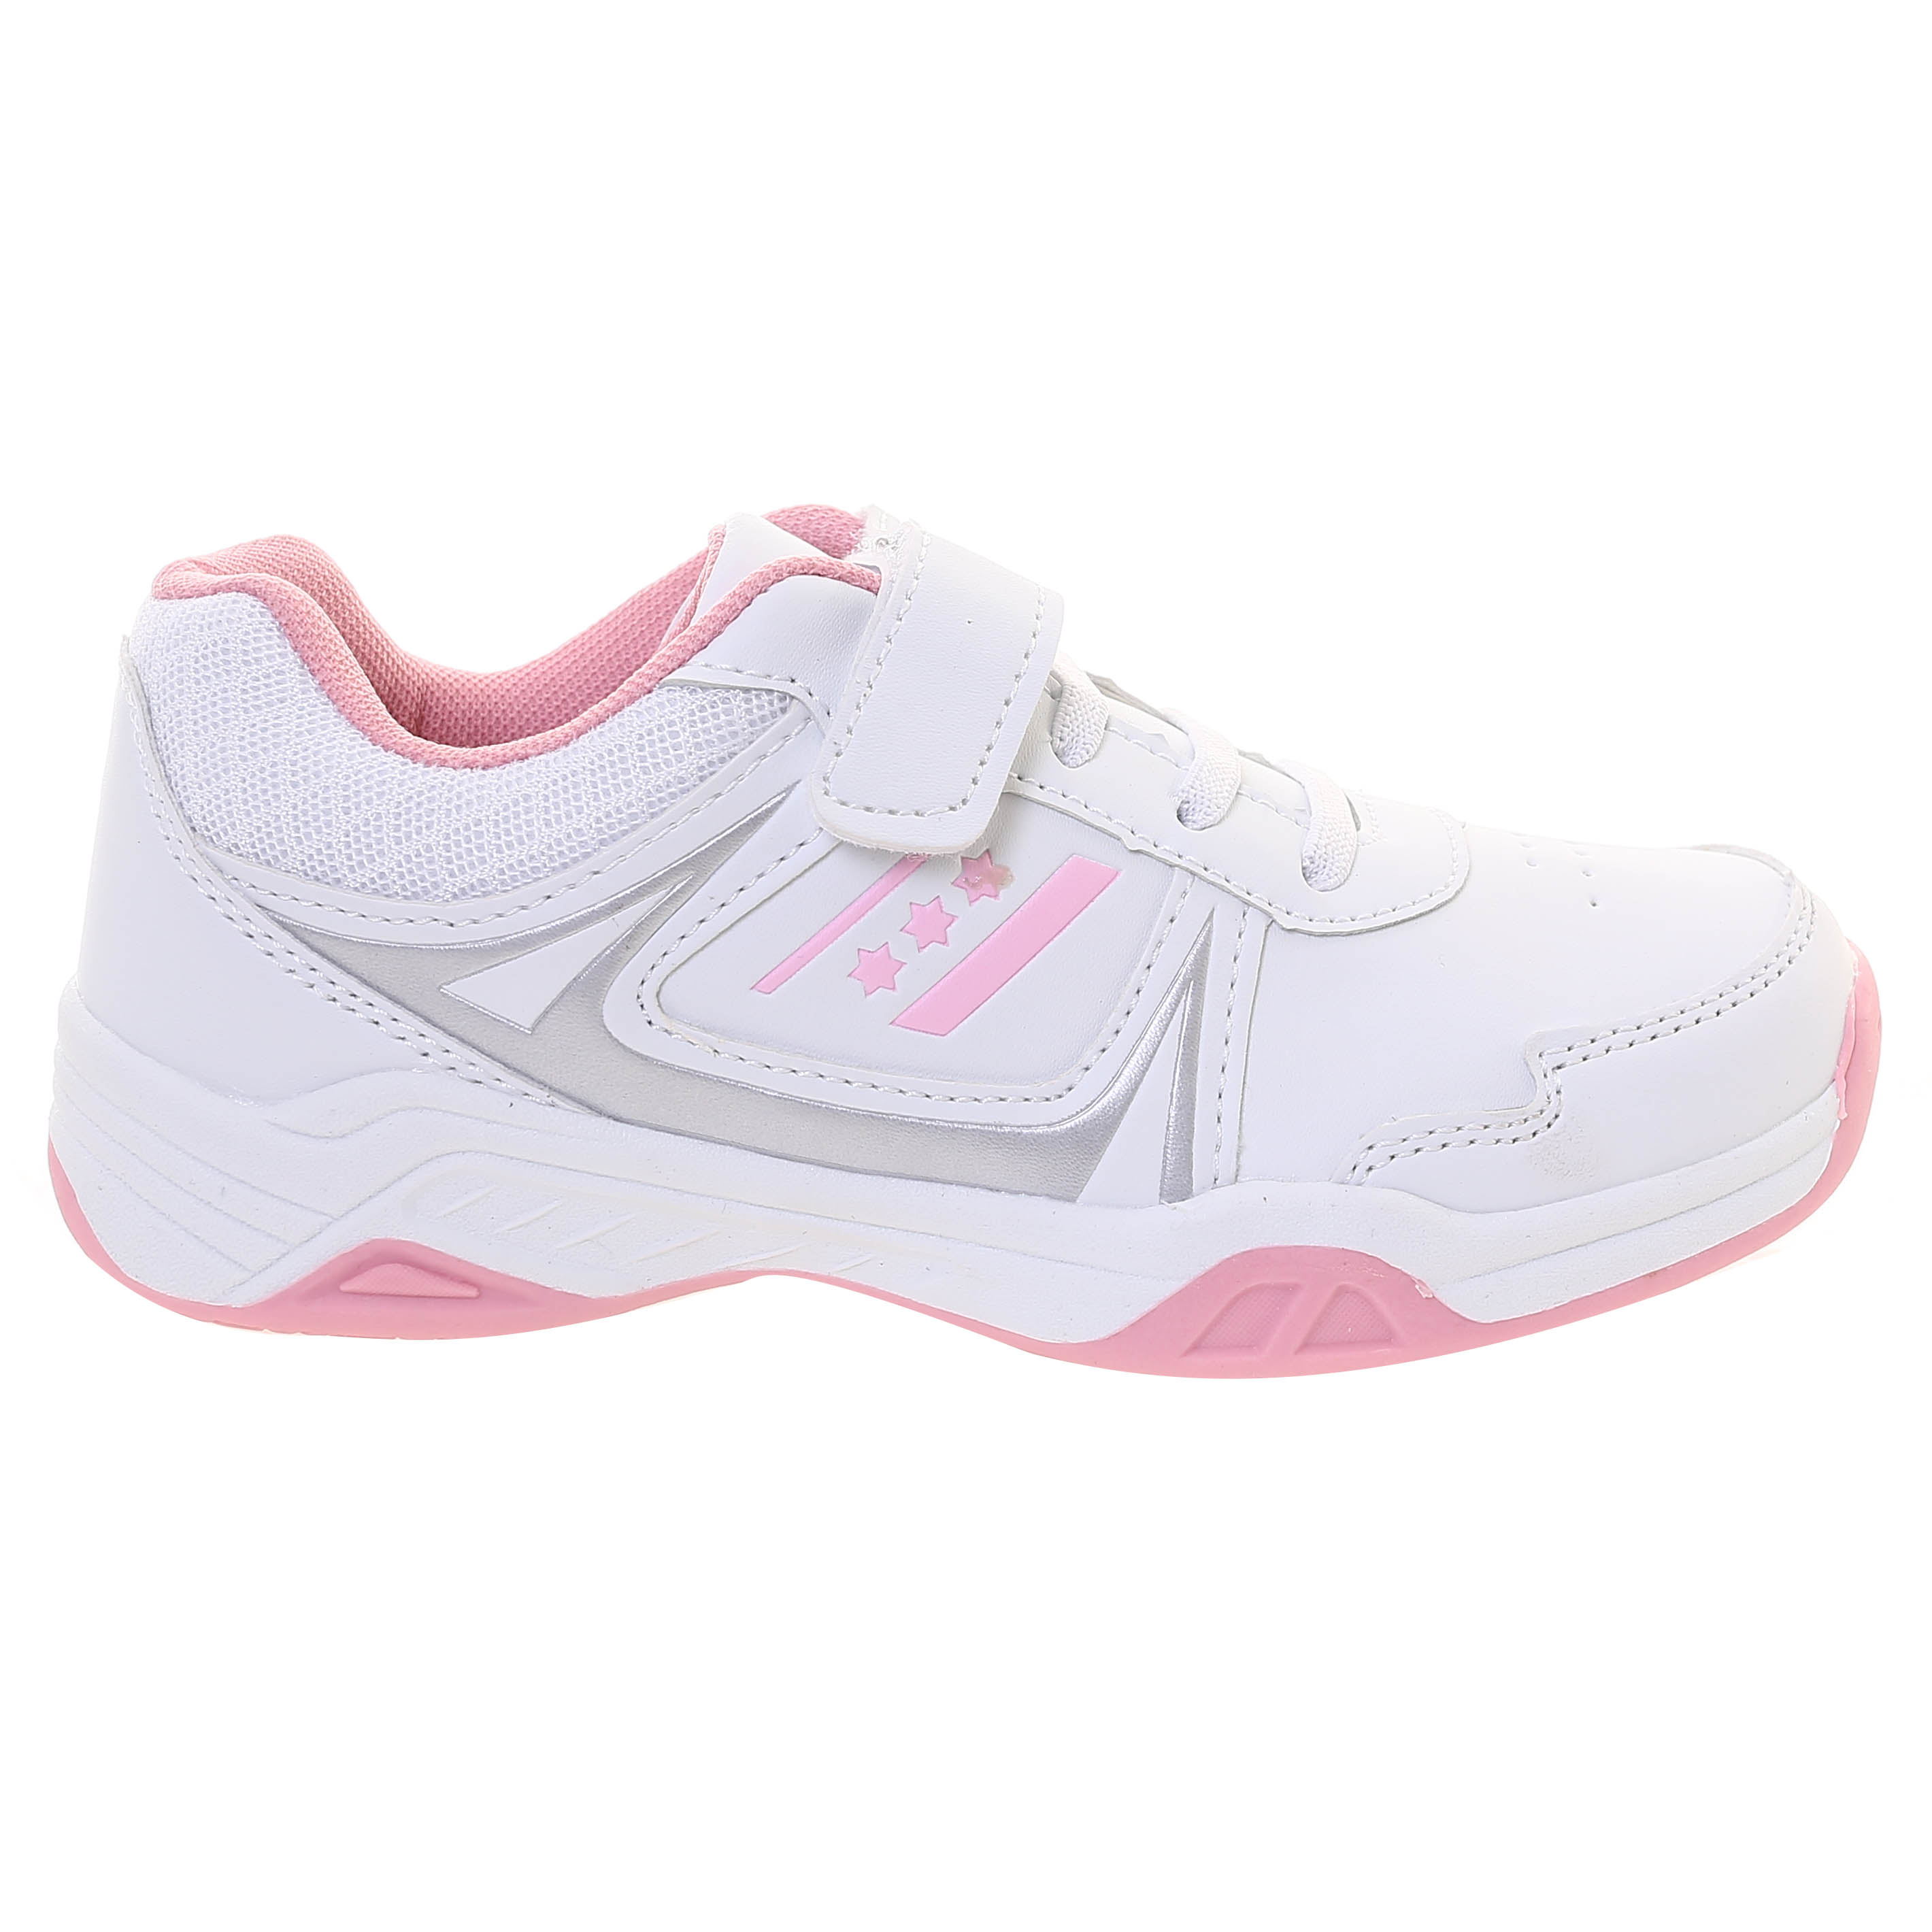 RUCANOR SPORT SHOES GAME TENNIS SHOES